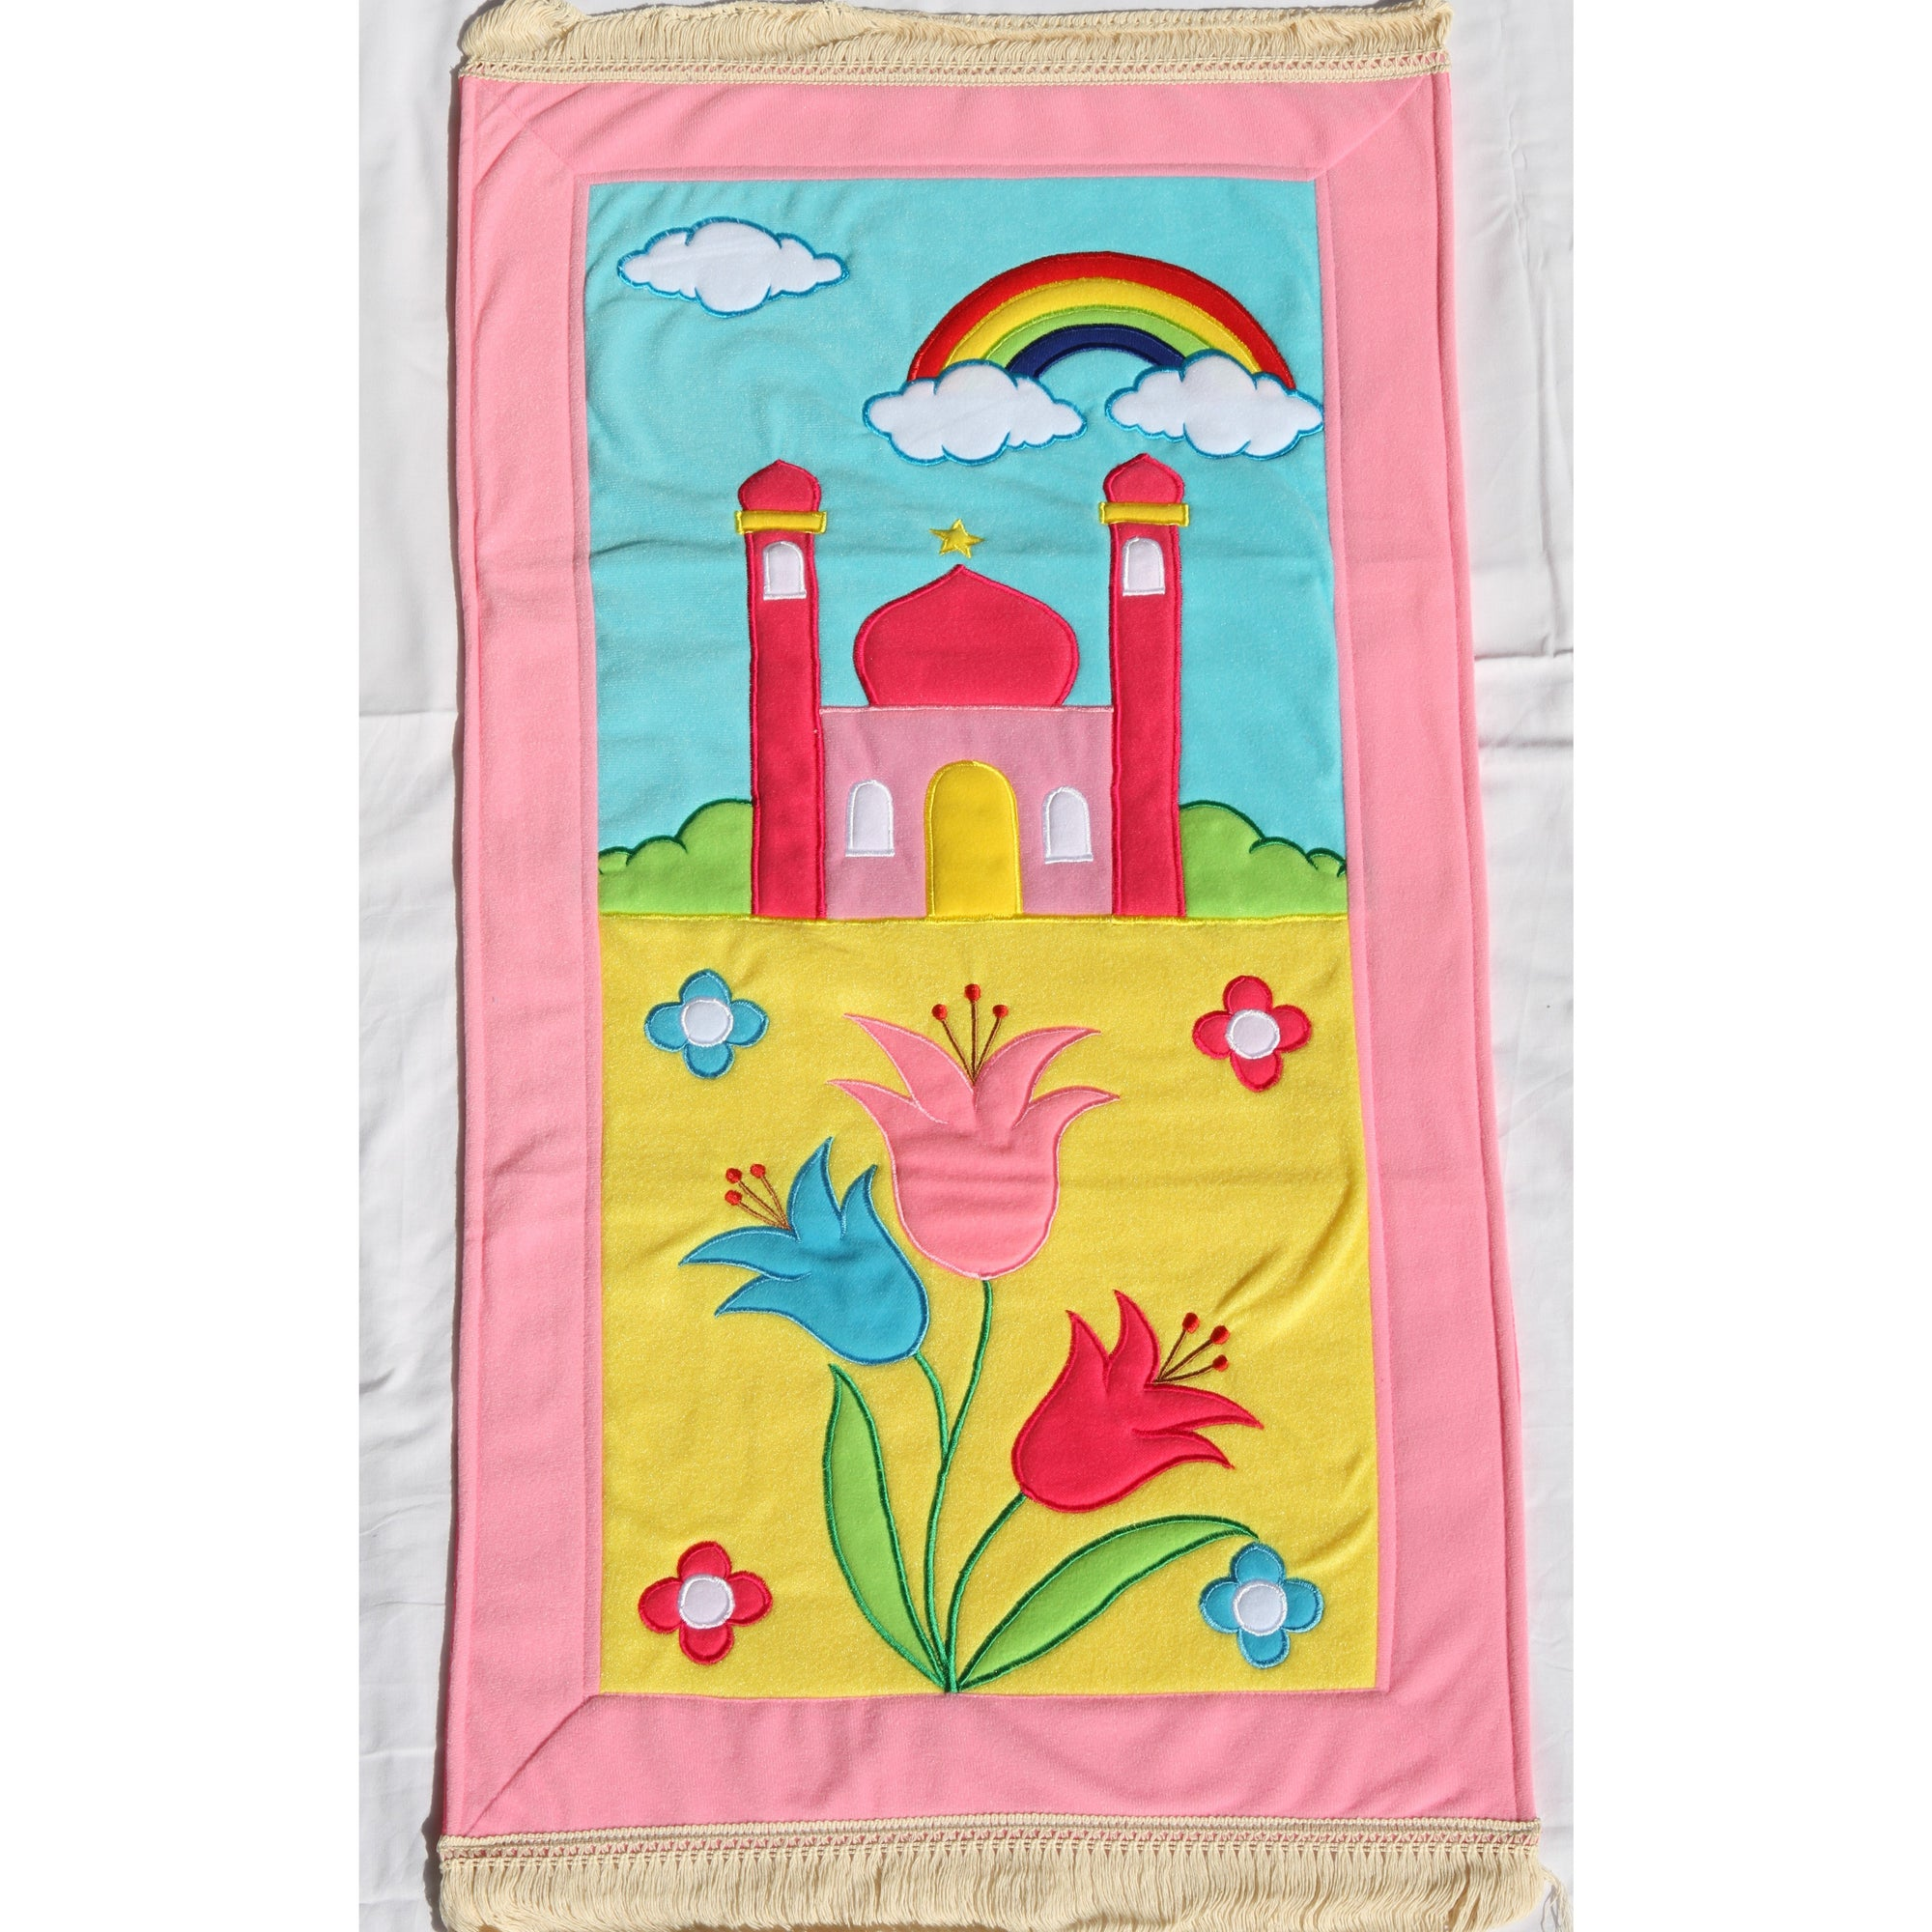 Handmade Kids Prayer Mat - Light Pink Border : Rainbow